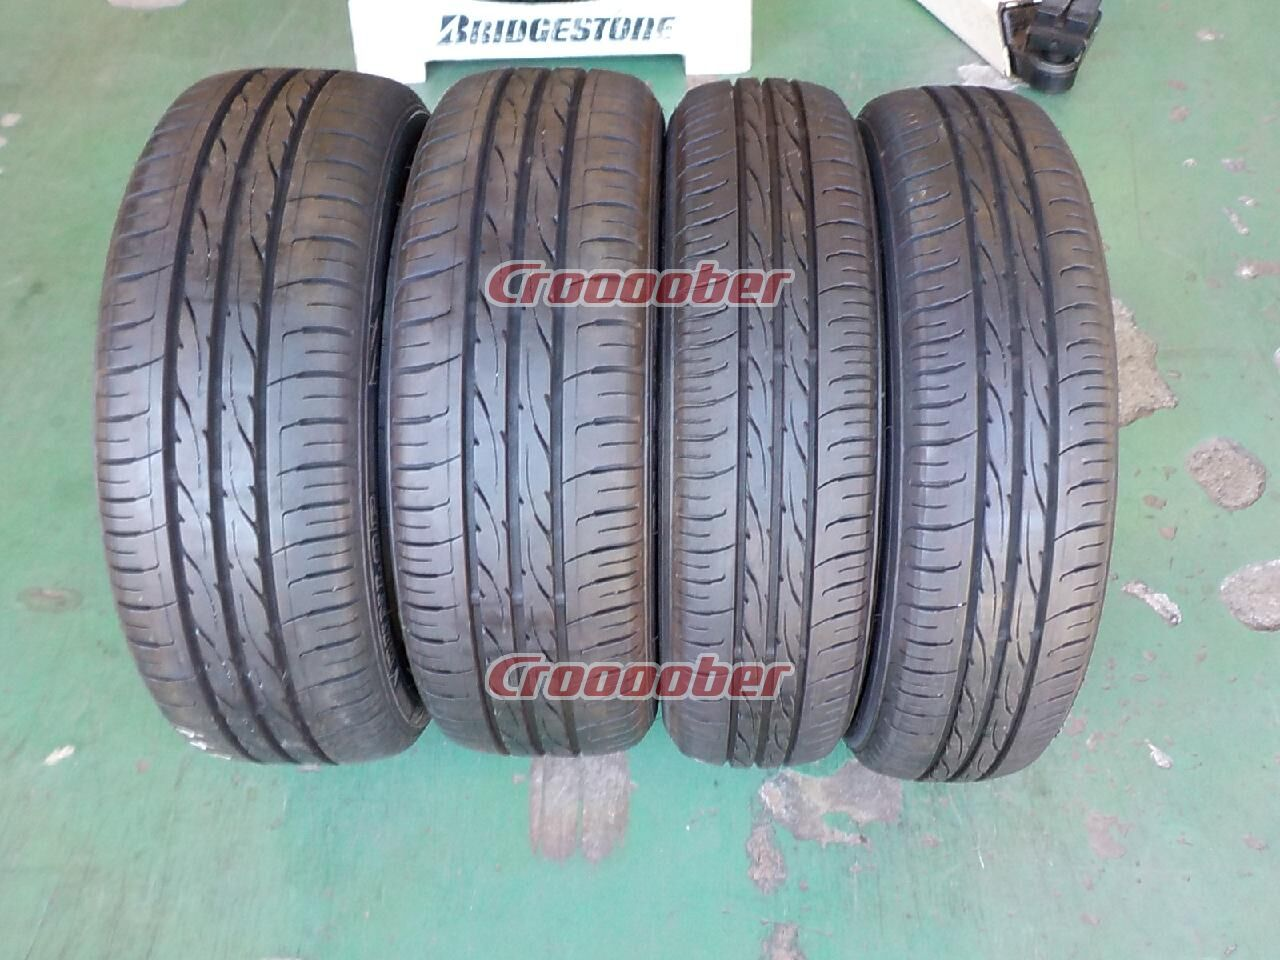 Container 1 Dunlop Enasave Ec203 Four Pairs Of Front And Rear Size